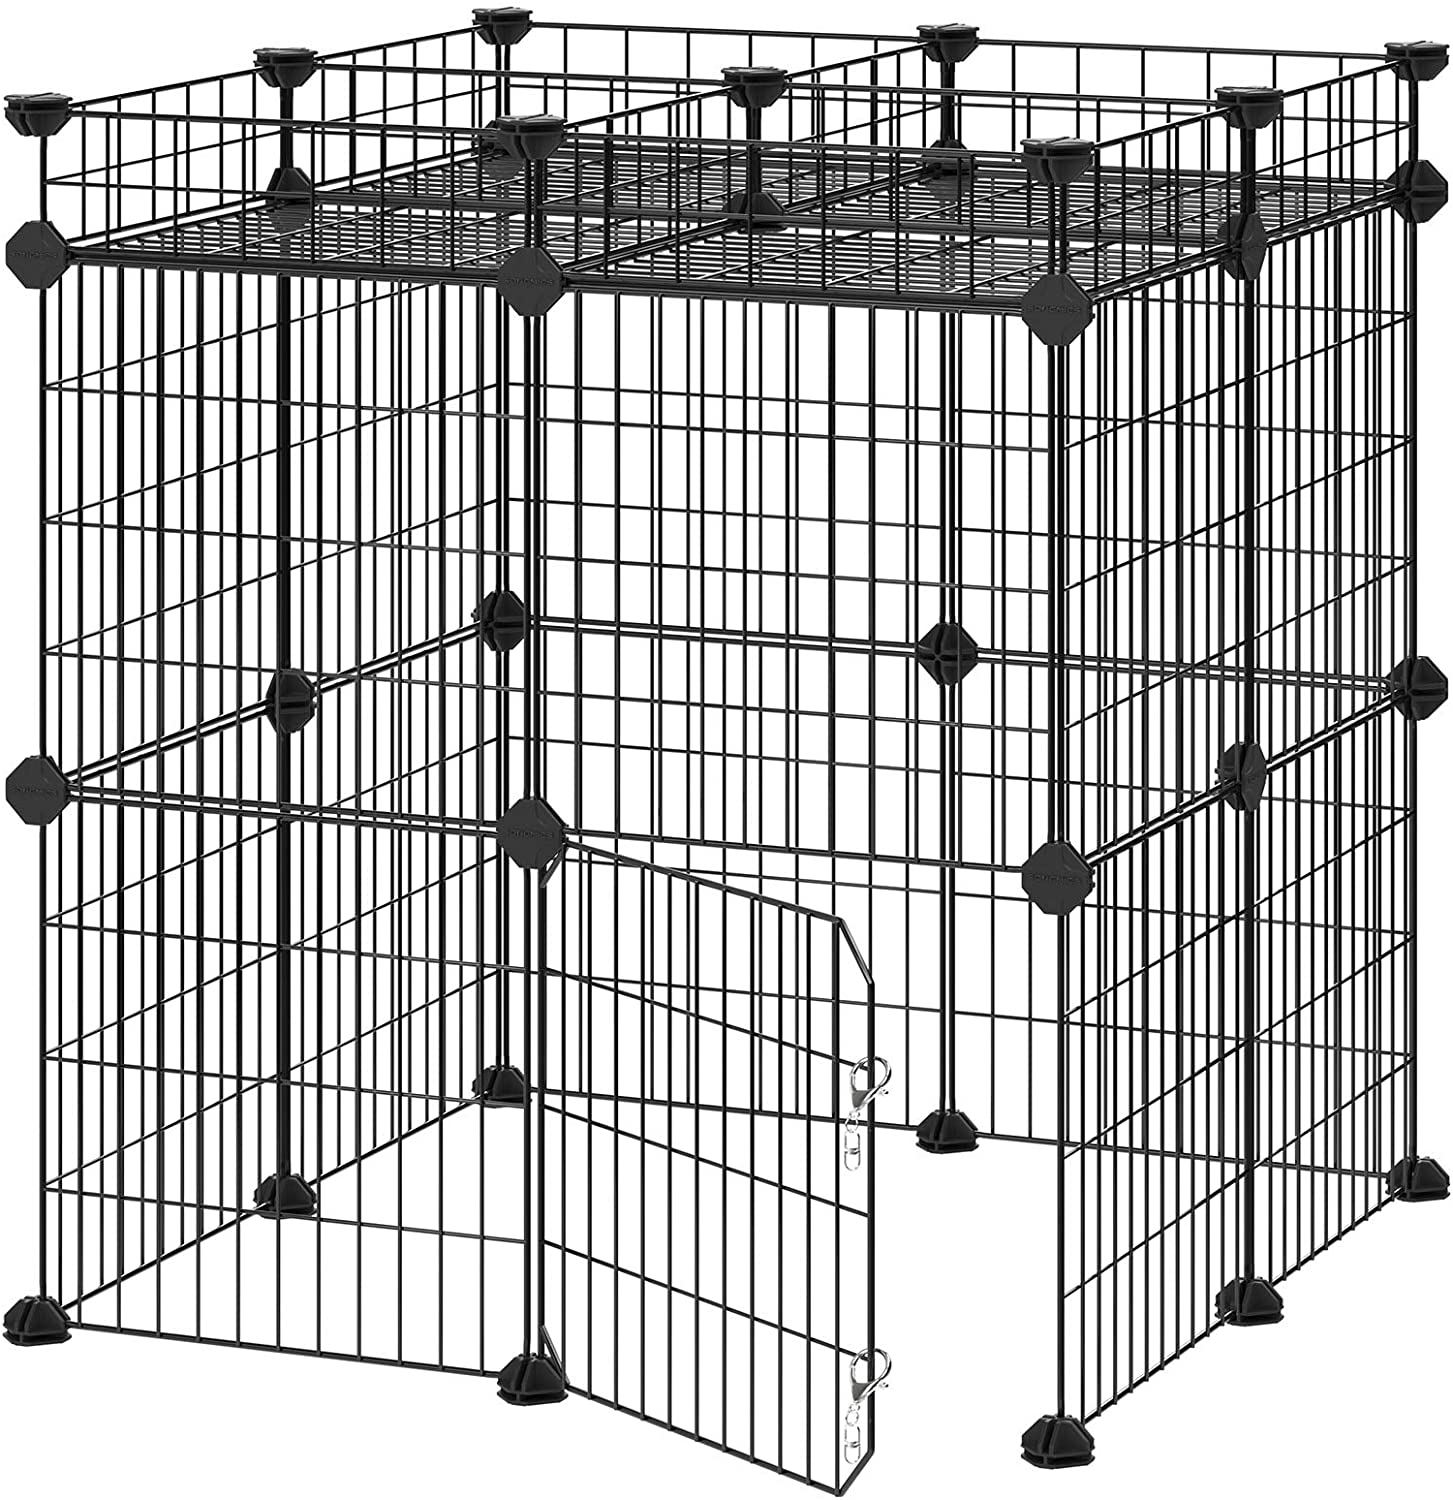 Enjoy fast, free nationwide shipping!  Family owned and operated, HawkinsWoodshop.com is your one stop shop for affordable furniture.  Shop HawkinsWoodshop.com for solid wood & metal modern, traditional, contemporary, industrial, custom, rustic, and farmhouse furniture including our Customizable Pet Playpen with Zip Ties.